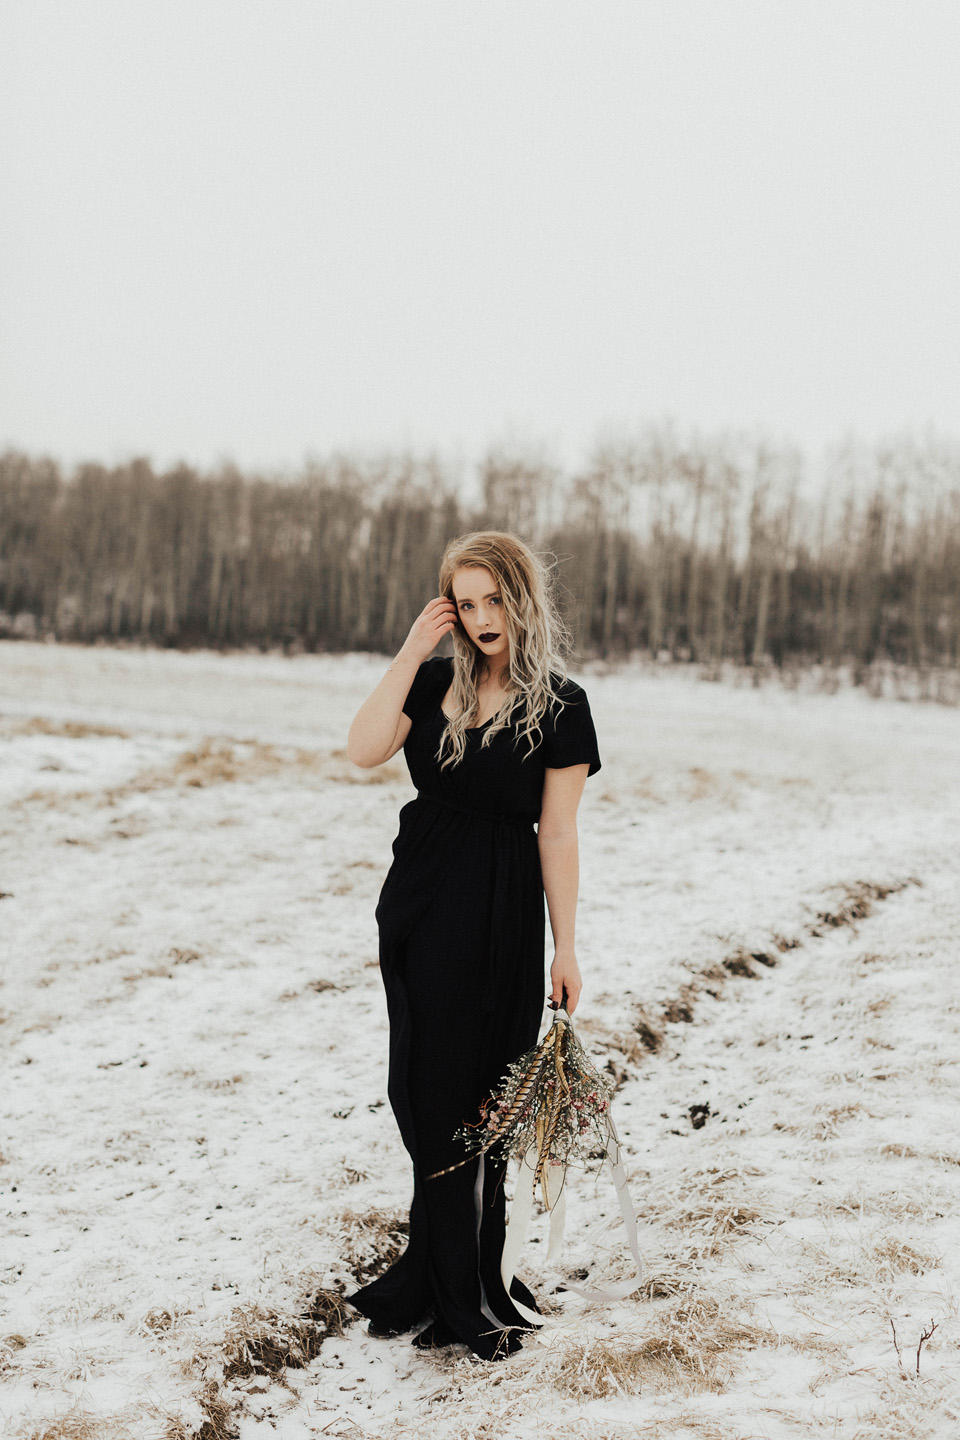 Moody Winter Bridals Edmonton Portrait and Wedding Photographer - Michelle Larmand Photography -012